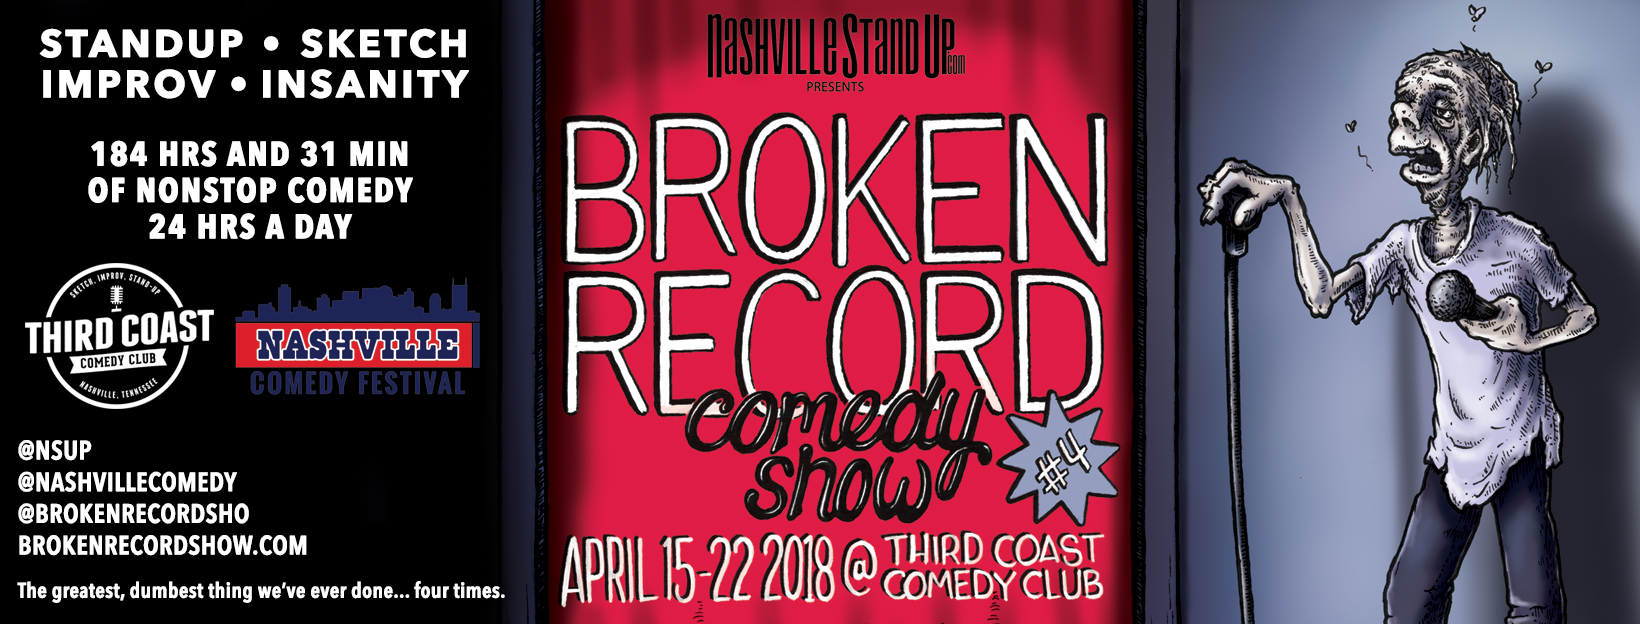 #BrokenRecordShow 4 - April 15-22, 2018 at Third Coast Comedy Club. Original poster art by Carden Illustration!